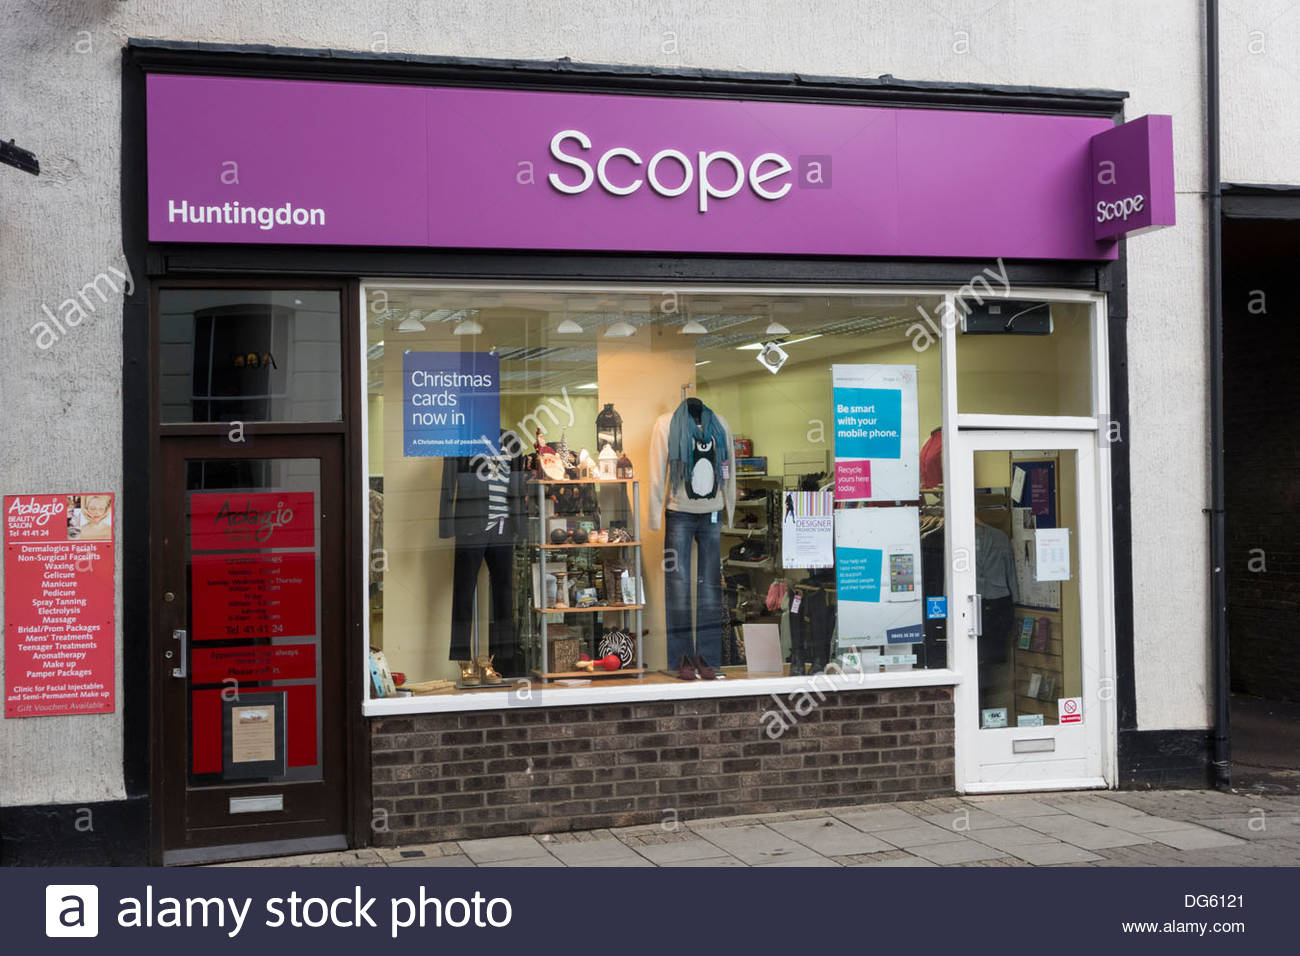 Scope charity shop in the High Street, Huntingdon - Stock Image